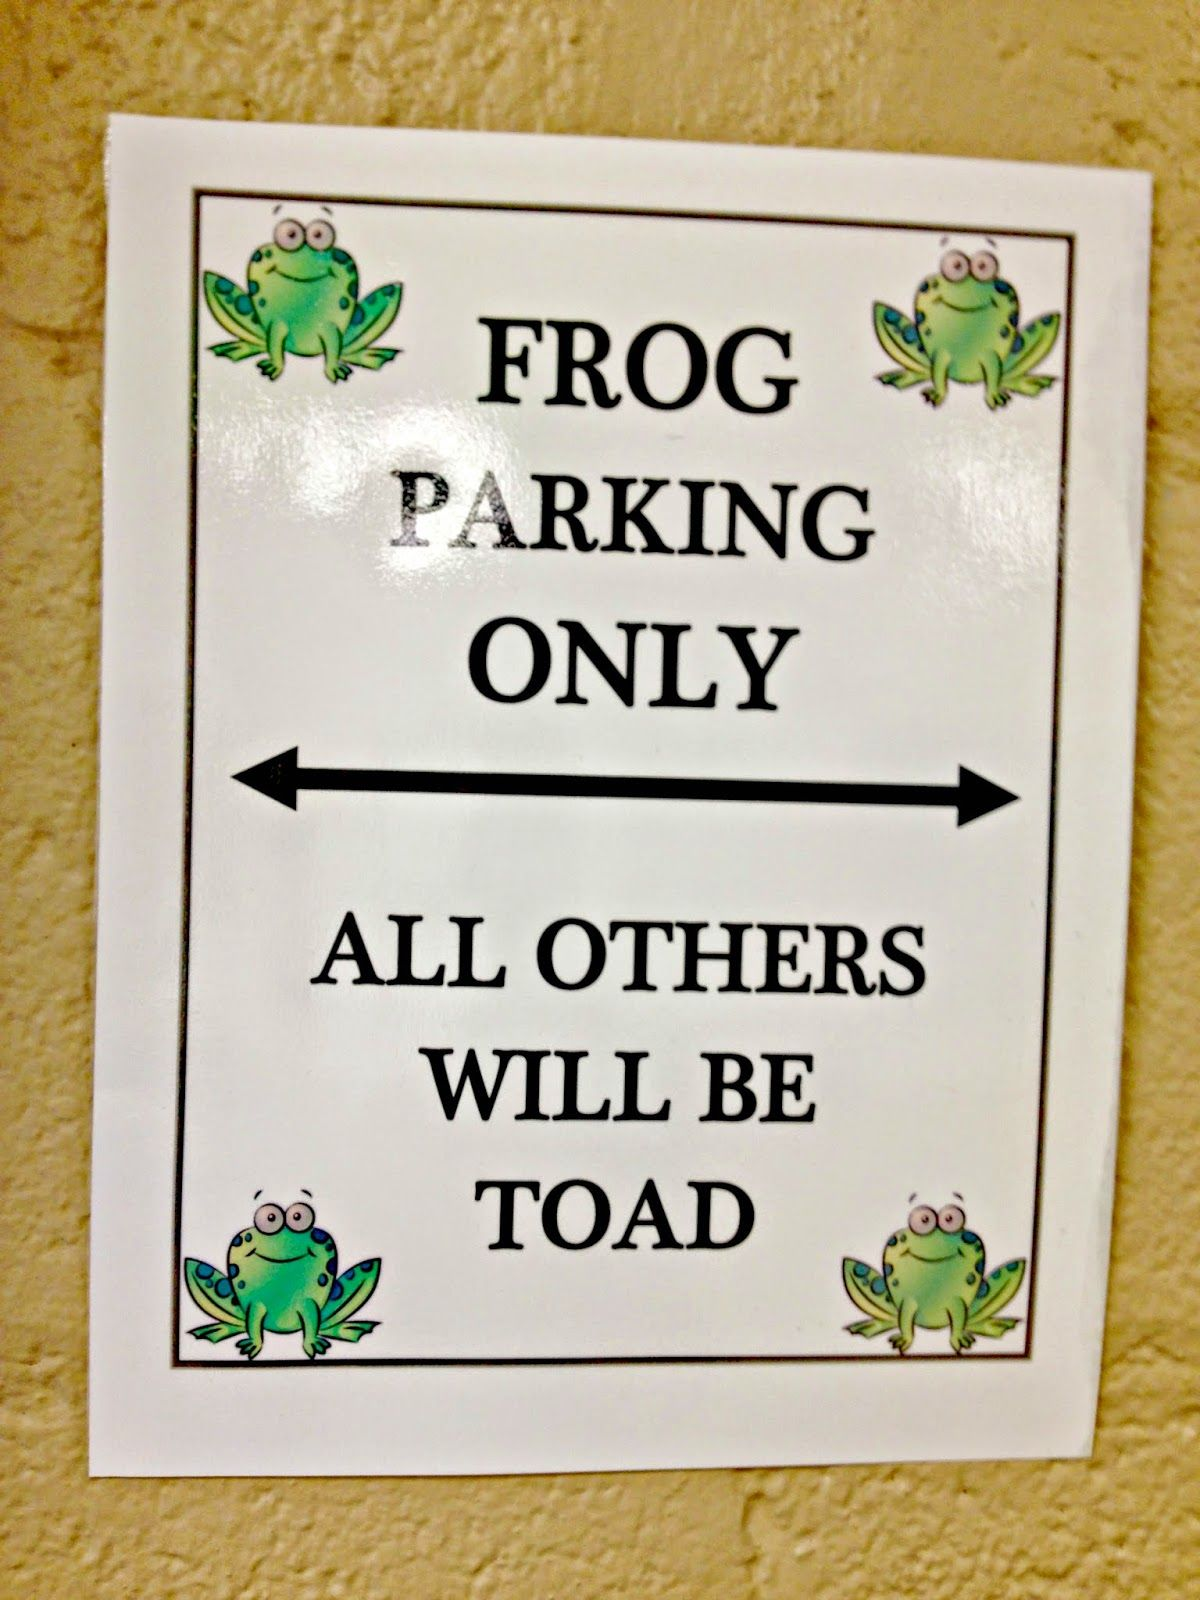 Frog Fully Rely On God Frog Parking All Others Will Be